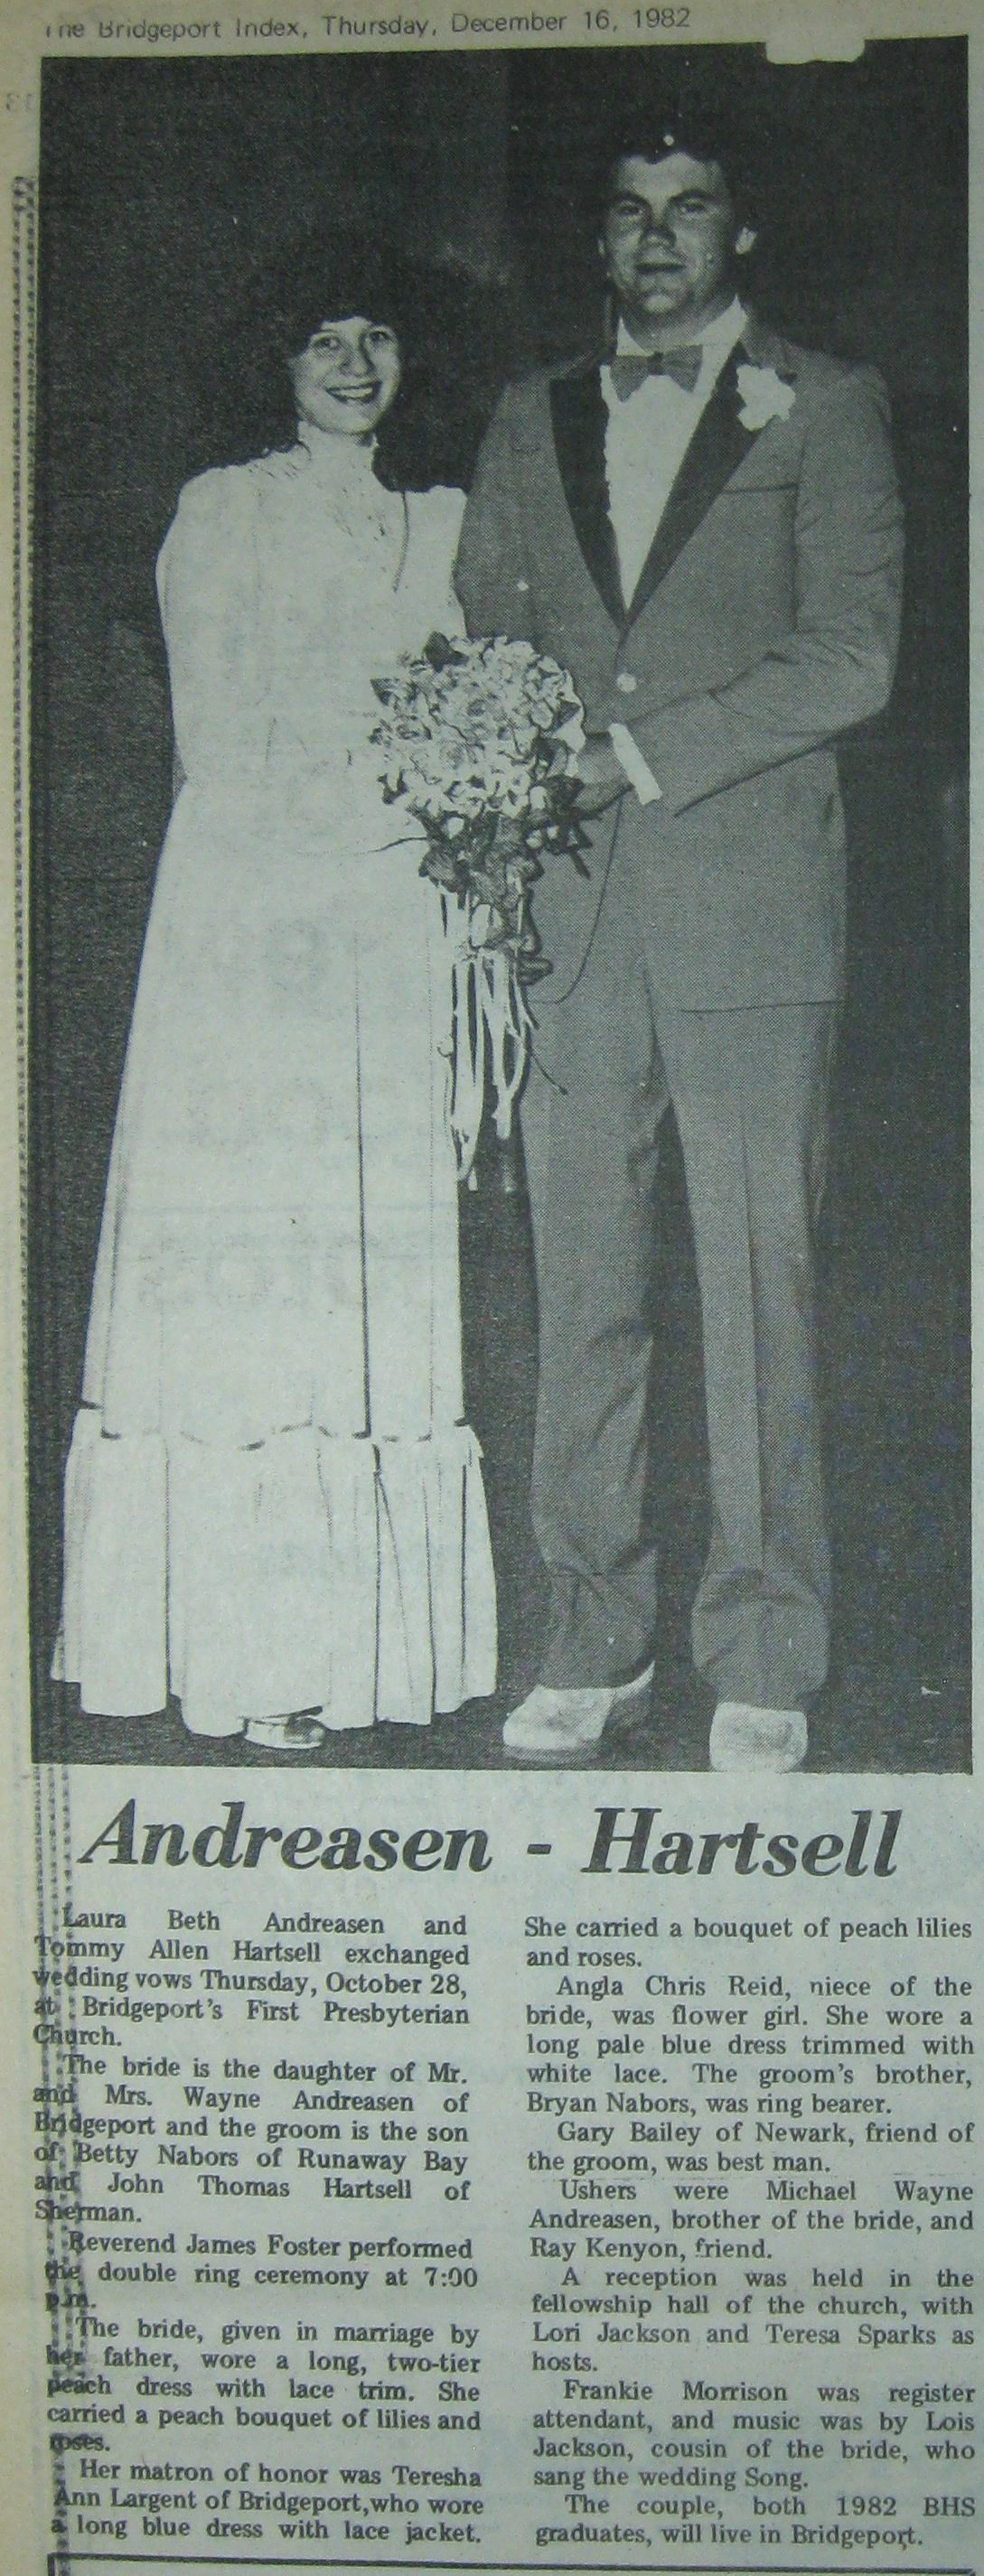 Images Of Wise County Wedding And Anniversary